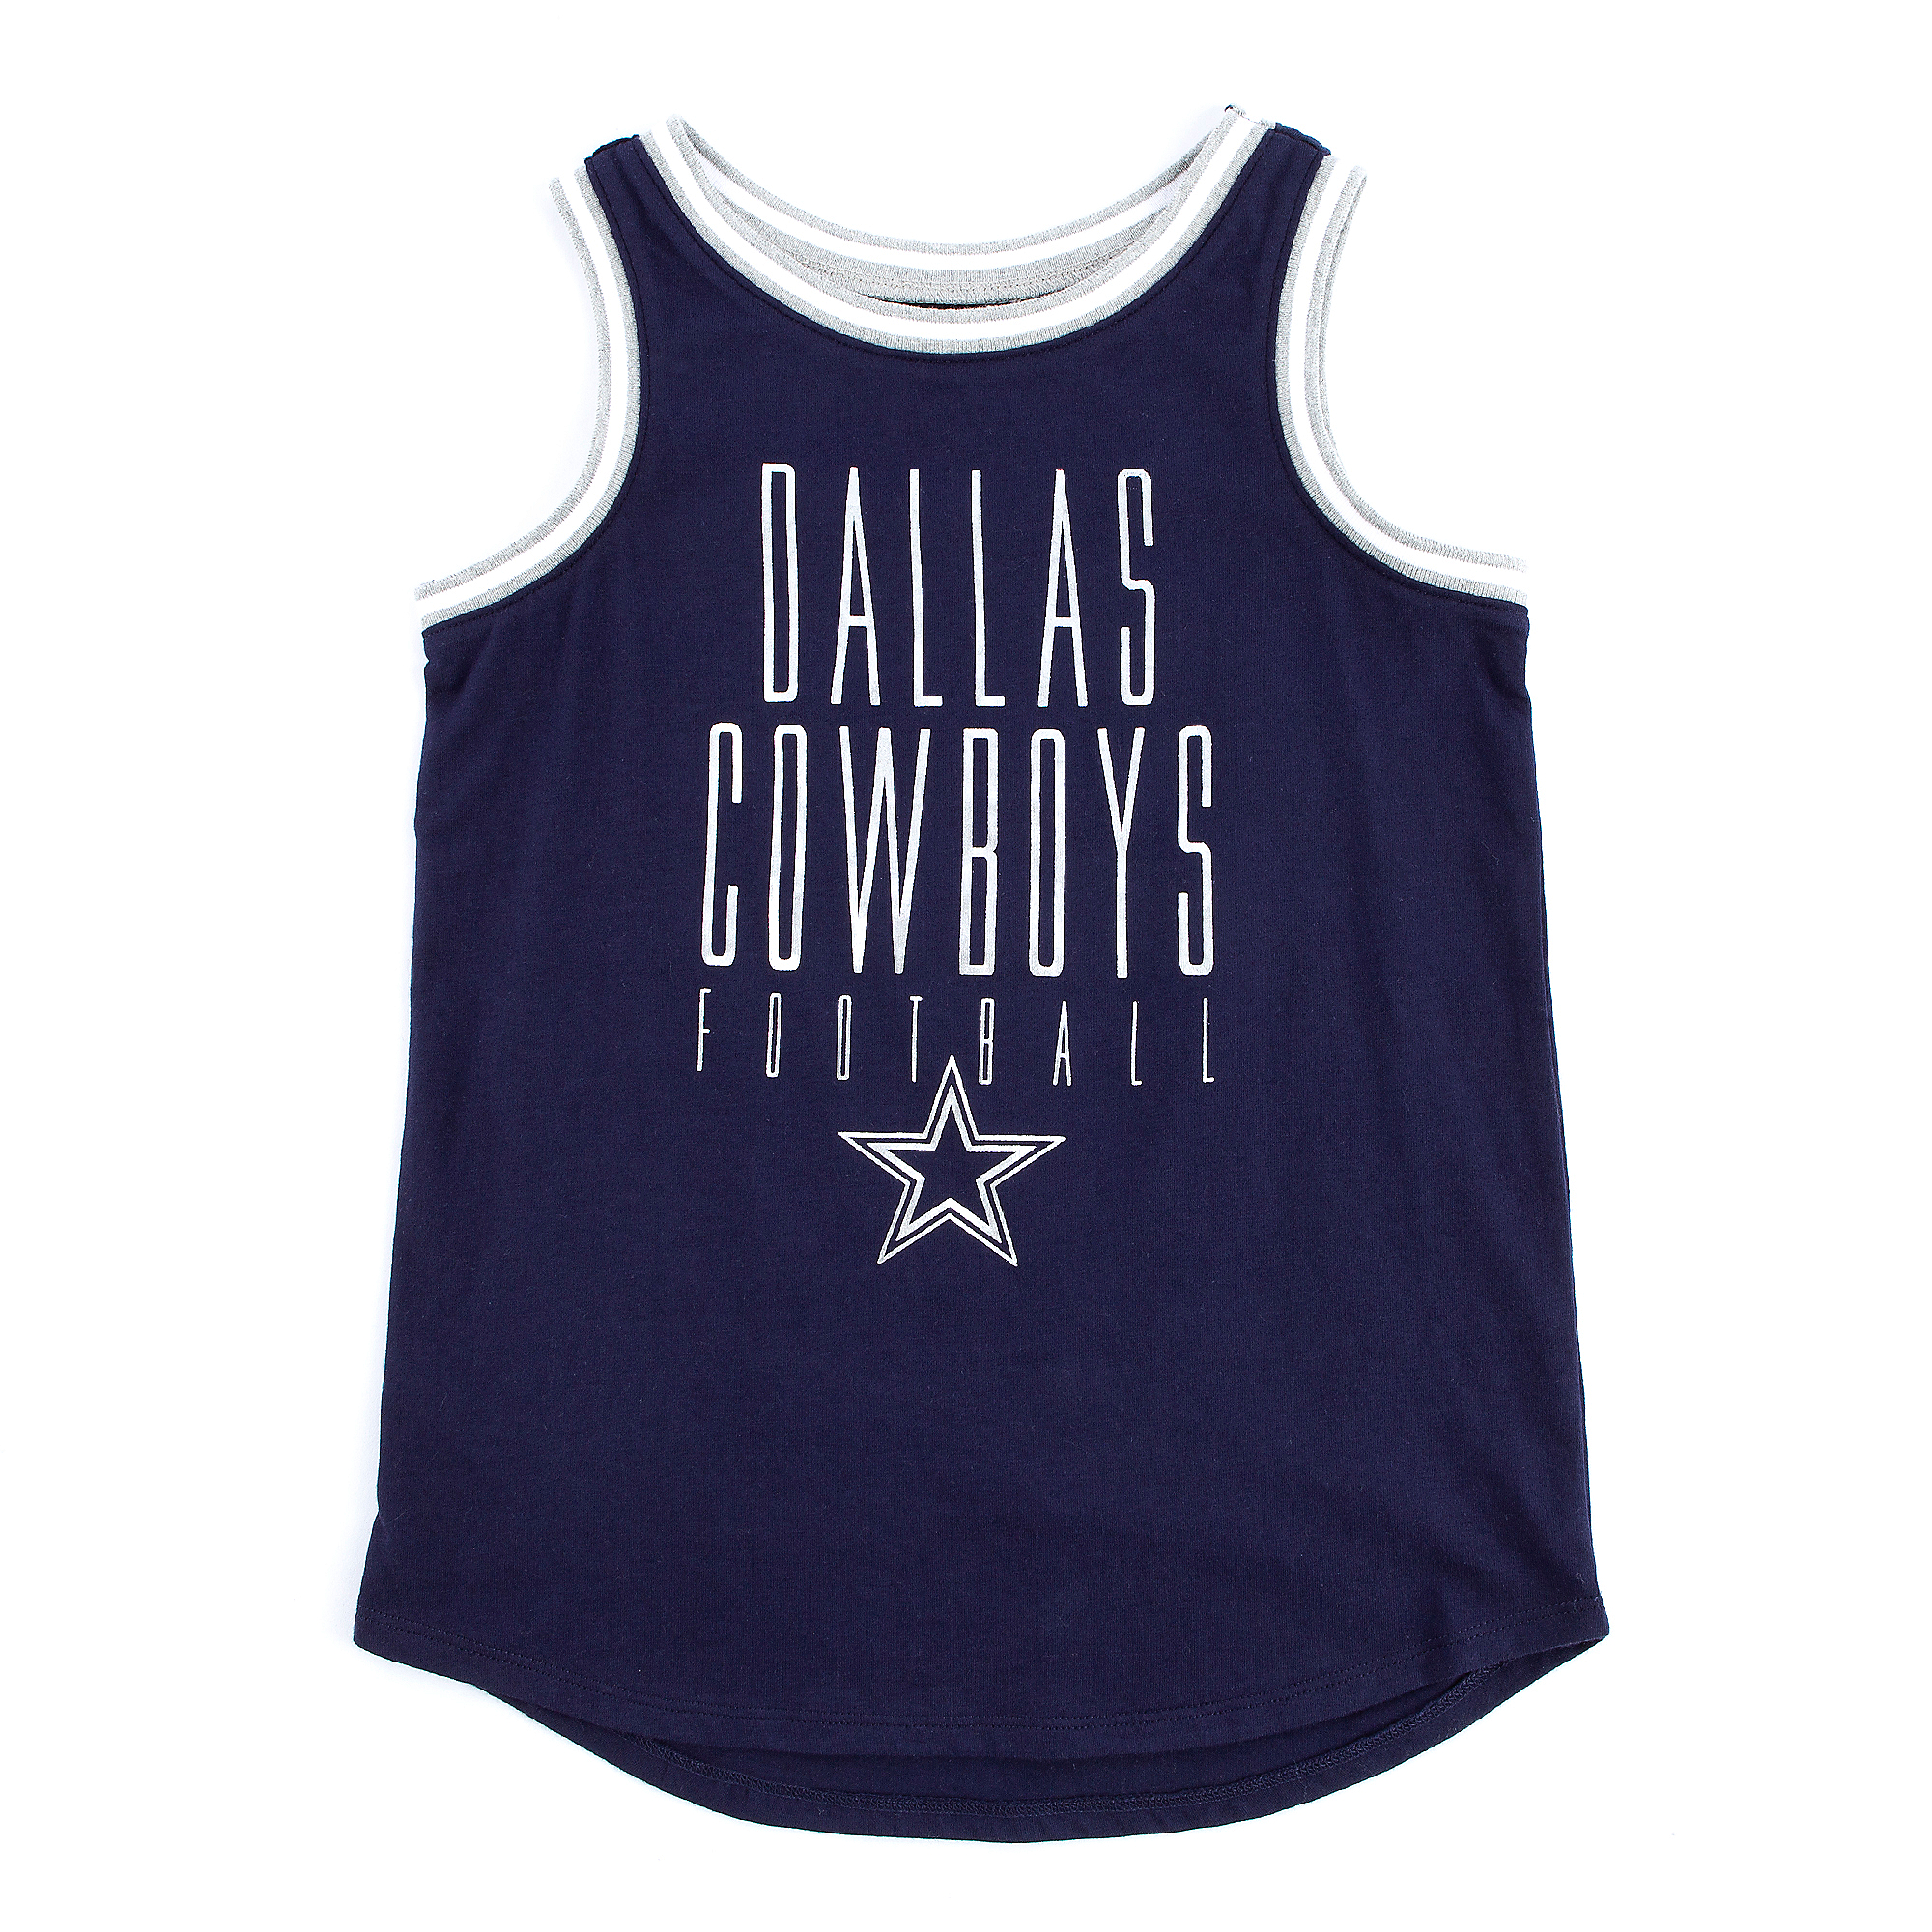 Dallas Cowboys Girls Tierra Tank